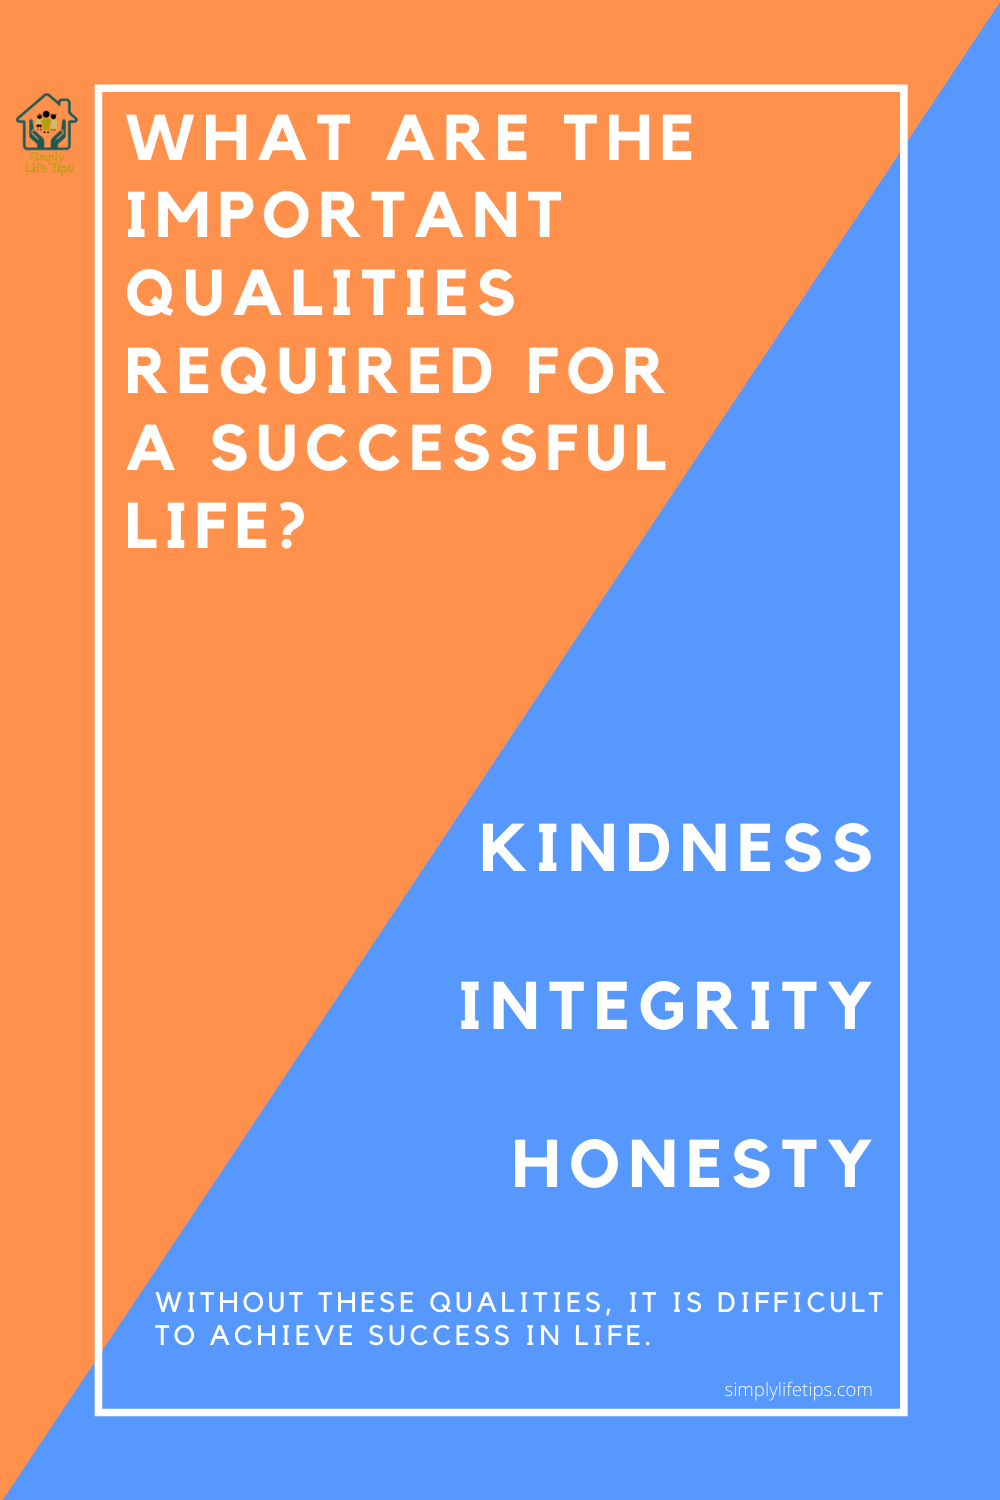 The Importance Of Kindness, Integrity And Honesty For A Successful Life